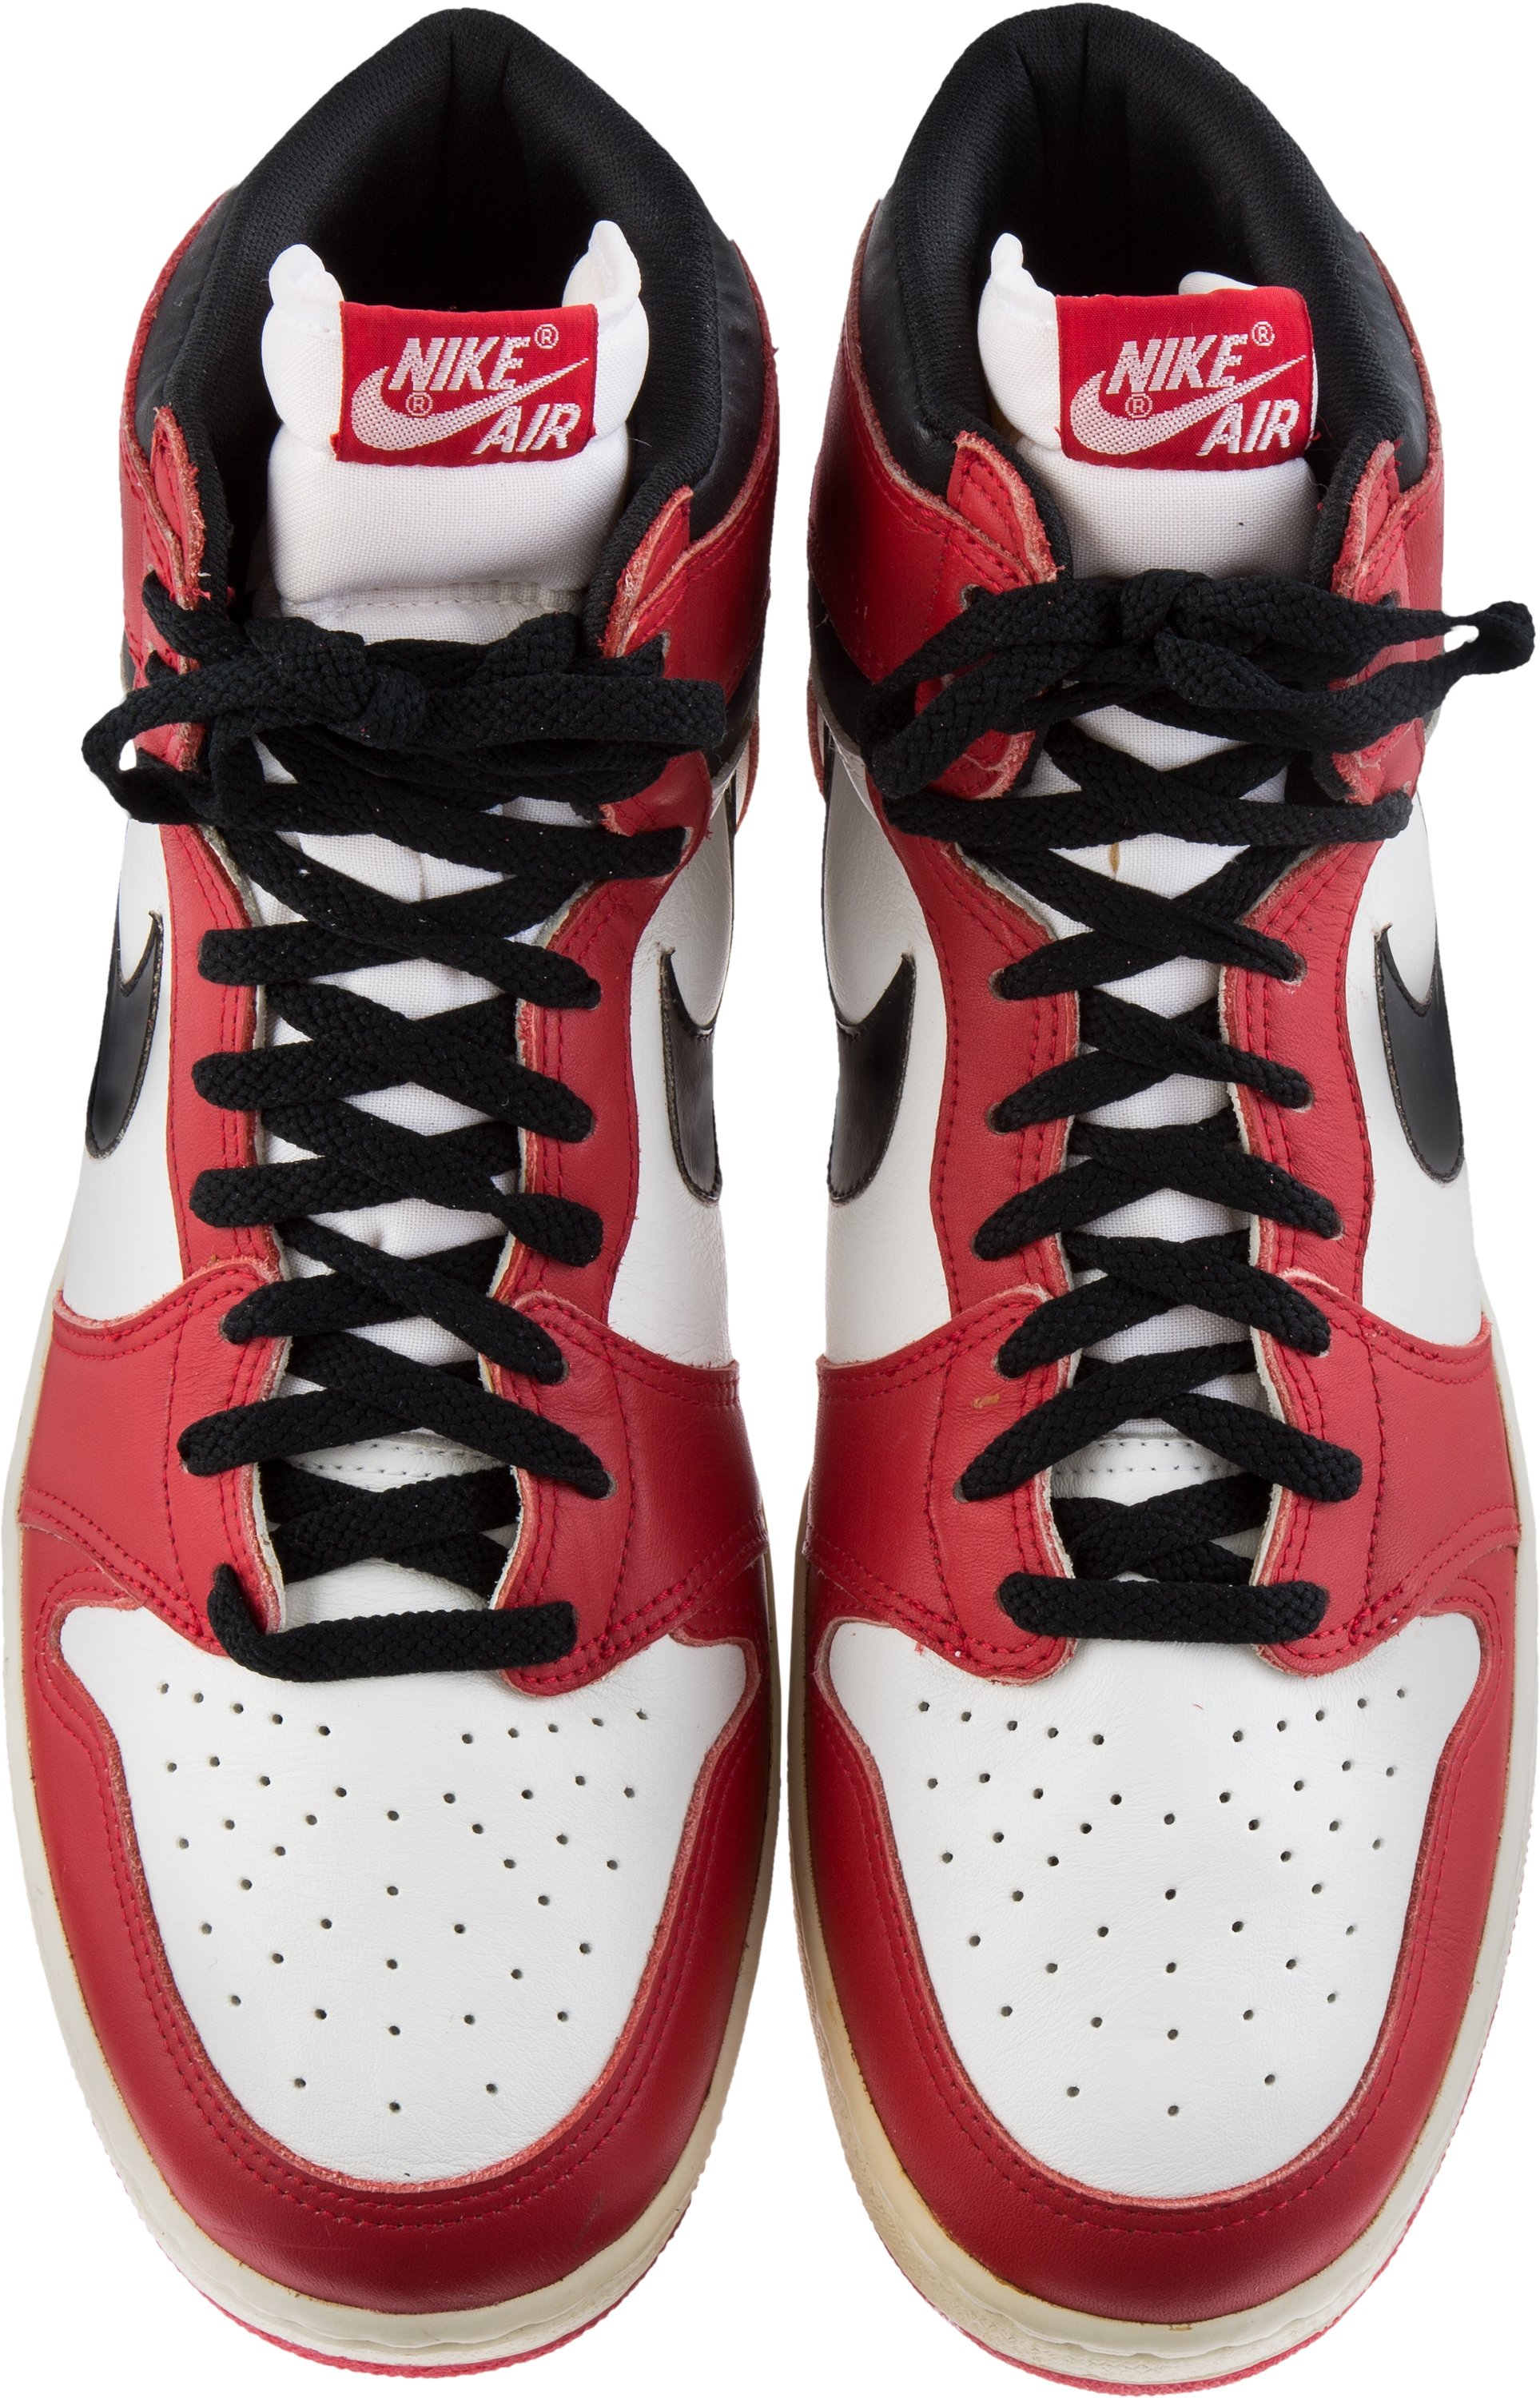 competitive price 89447 6d3d6 Michael Jordan Signed Air Jordan 1 1985 Mint Condition ...